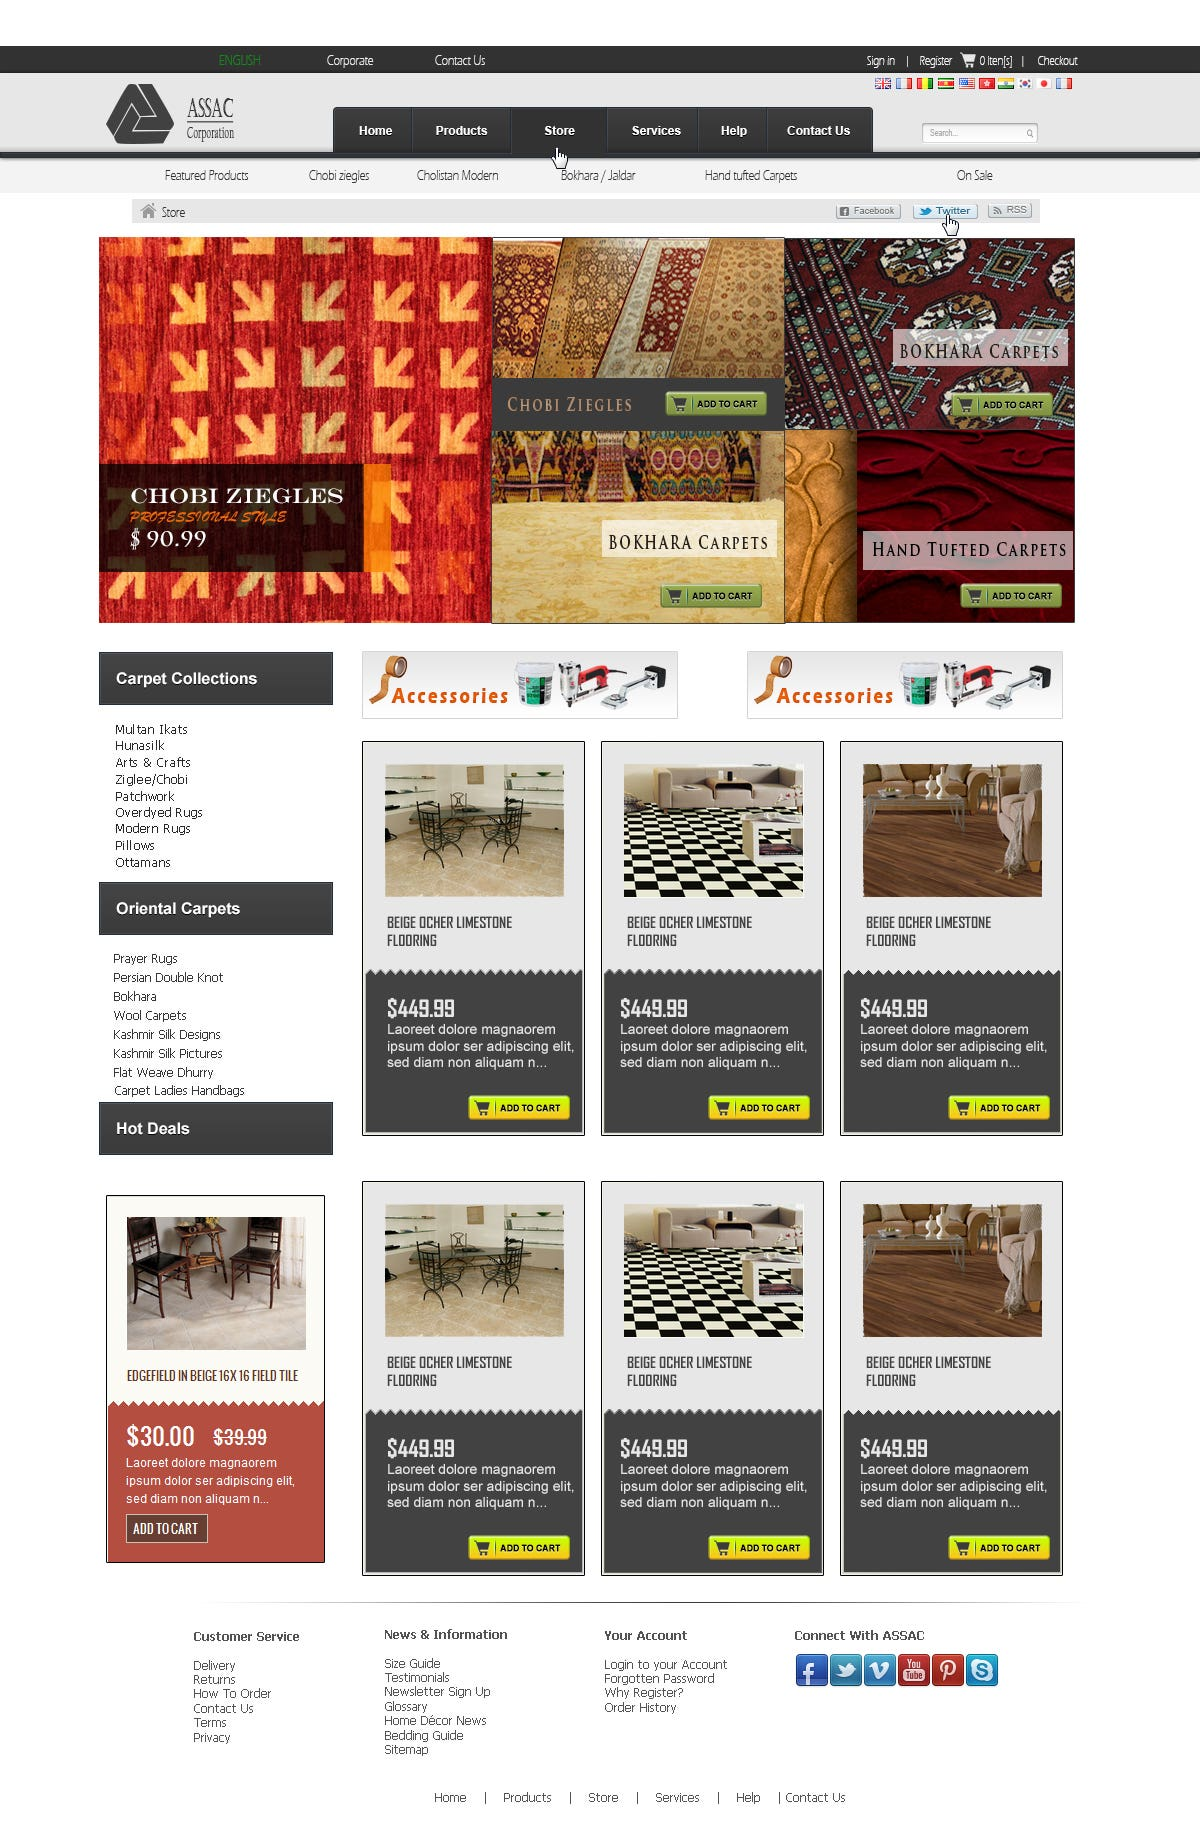 Miscellaneous designing work for websites